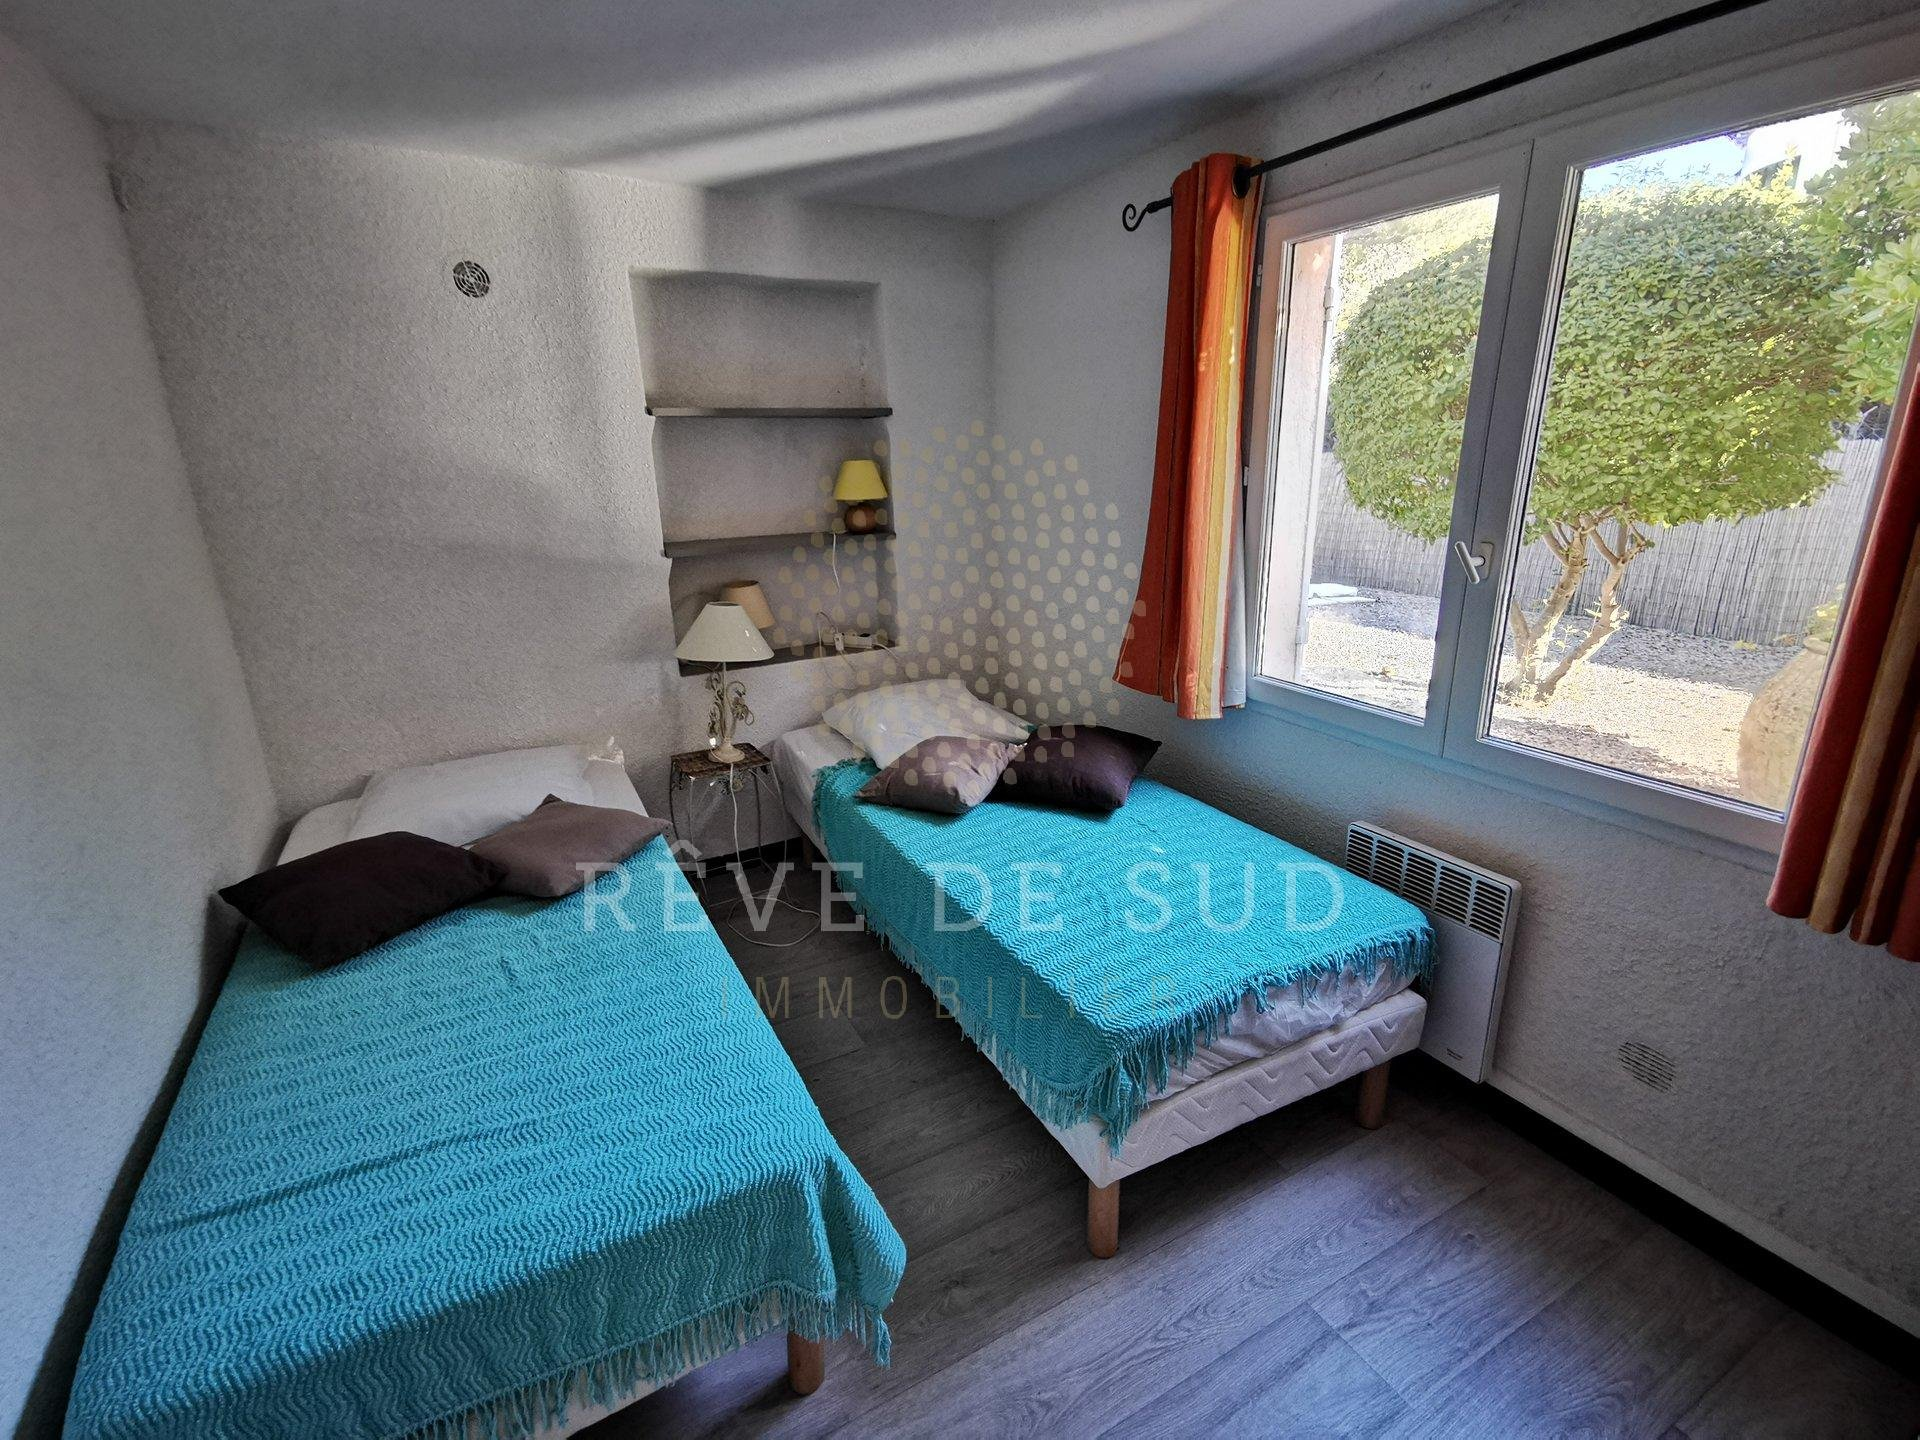 4 Bedroom House in Saint-Aygulf